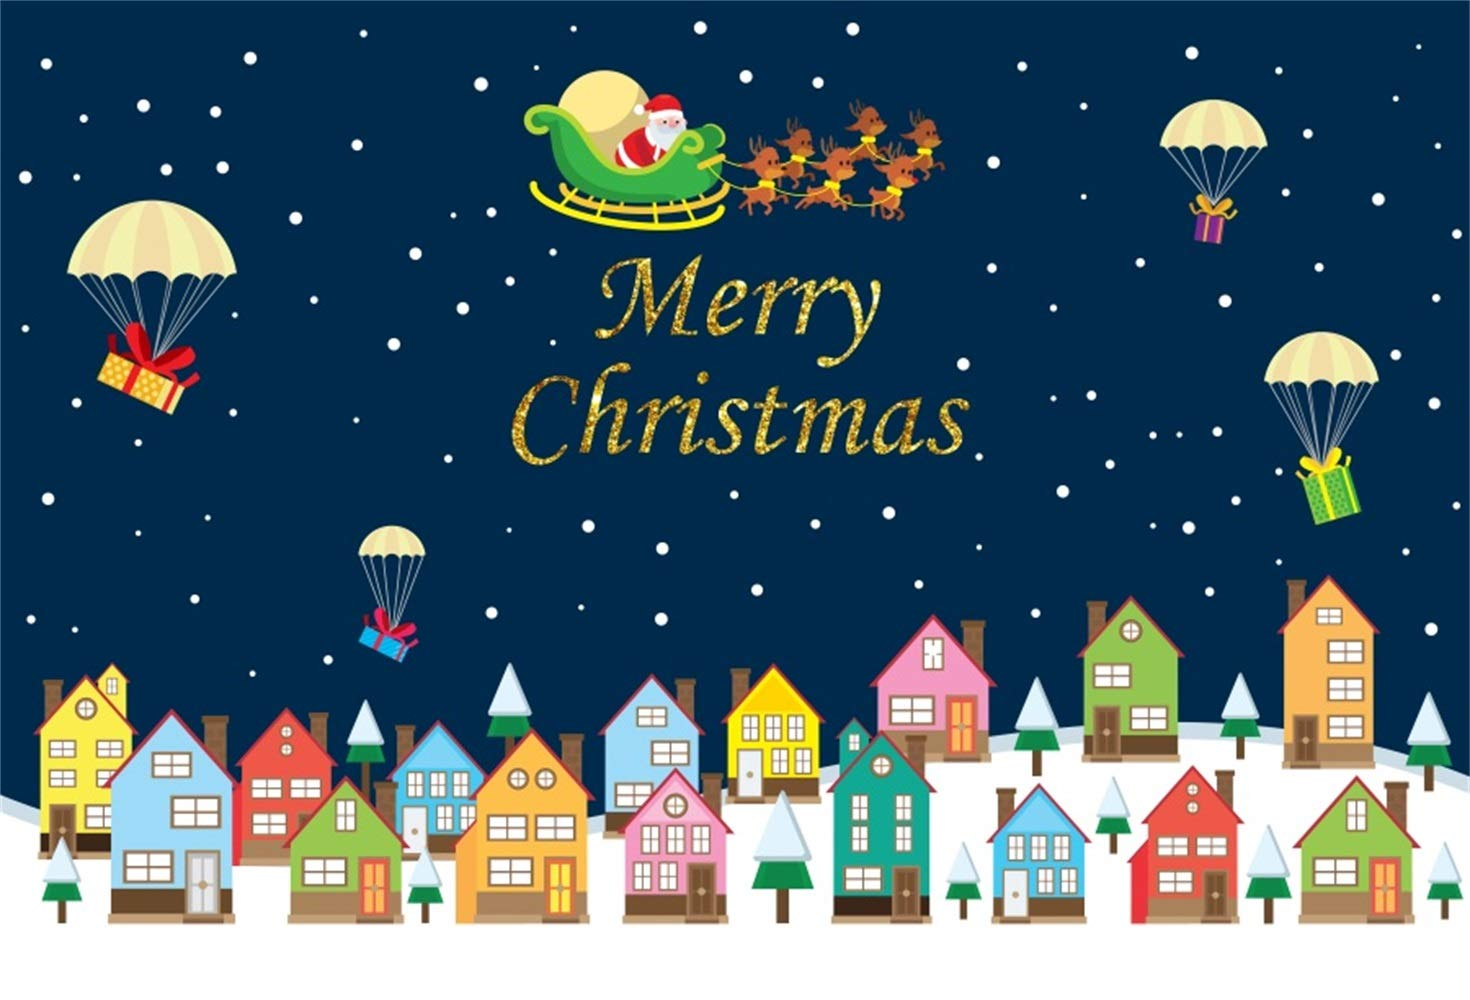 Laeacco Merry Christmas Backdrop Vinyl 7x5ft Cartoon Blocks Colorful Houses Fireballoon Gifts Santa Claus Starry Sky Photography Background New Year Xmas Party Banner Child Baby Adult Portrait Shoot